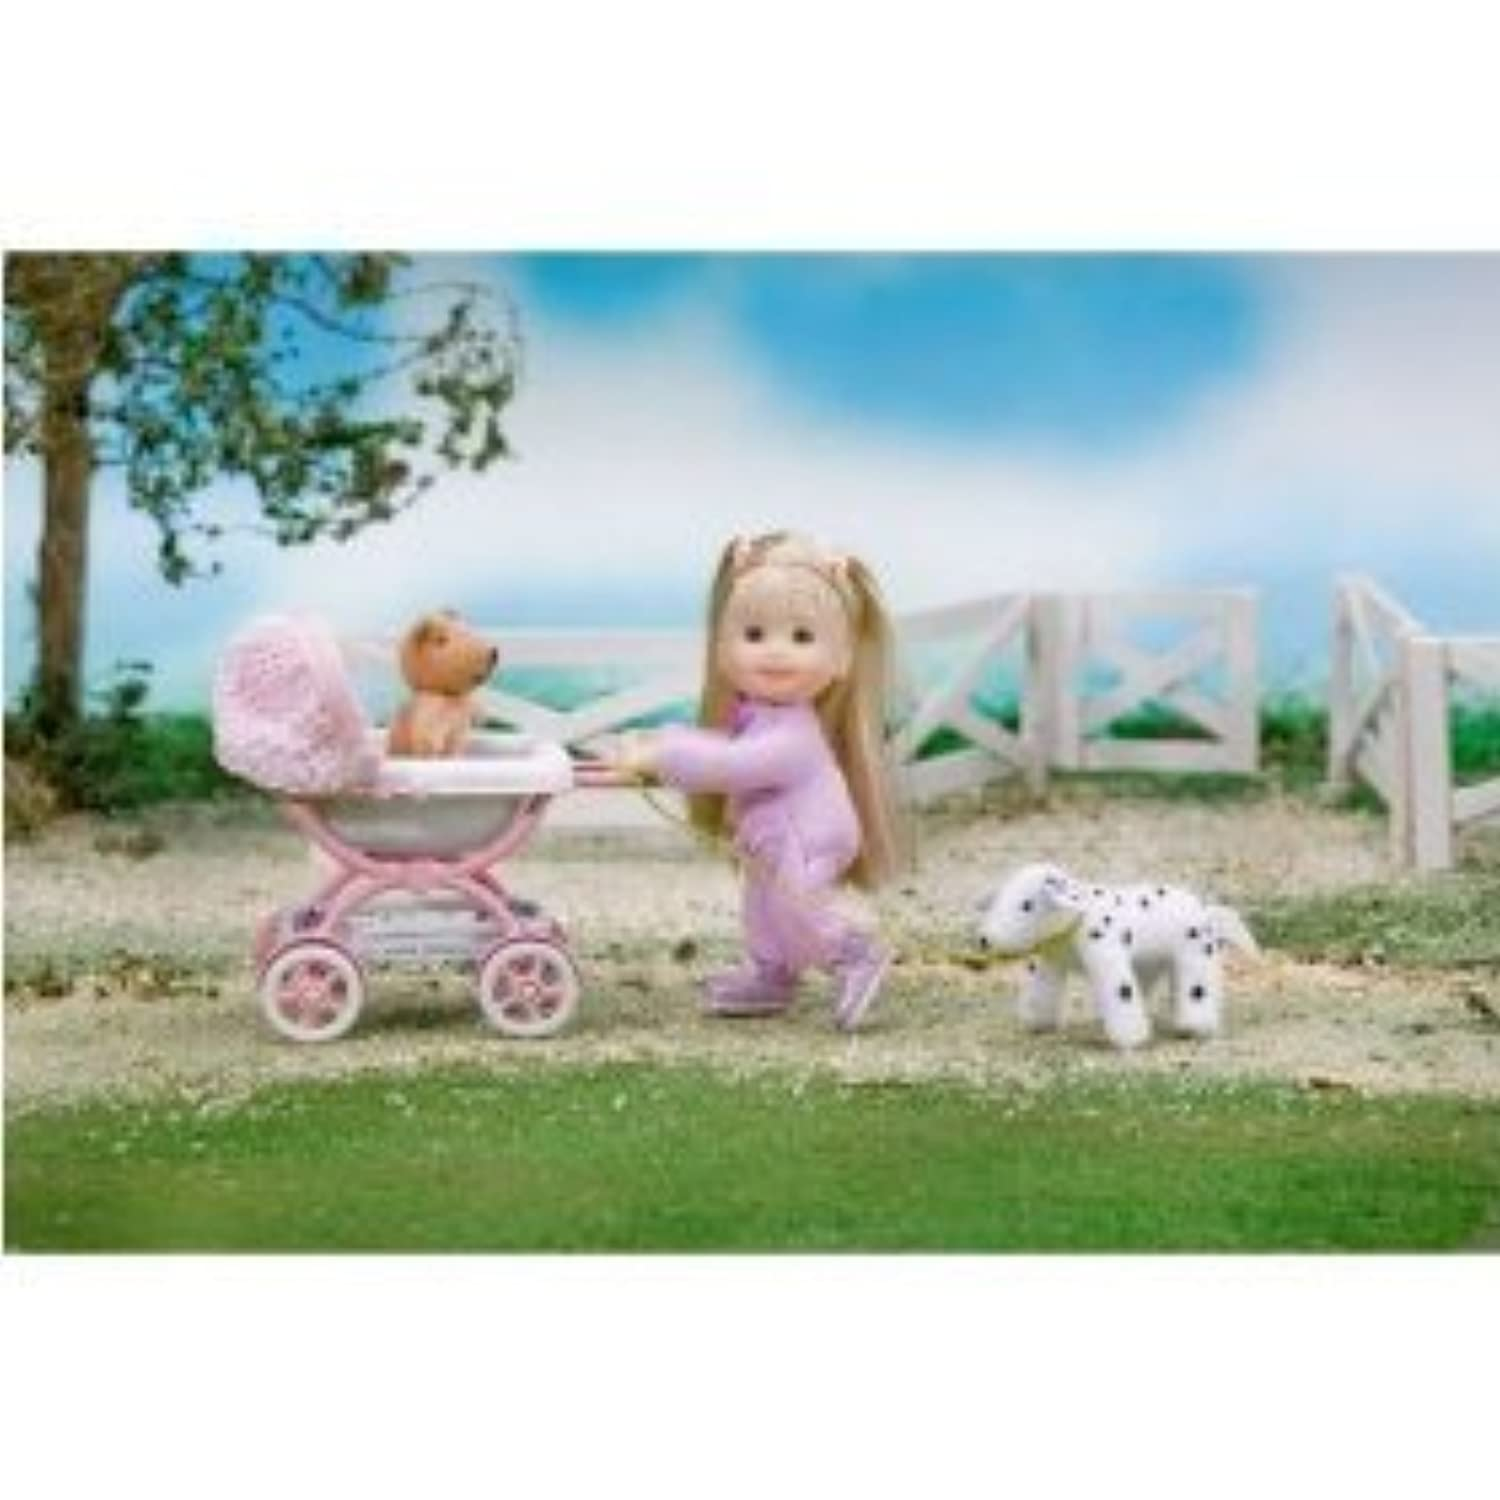 Only Hearts Club - Stroller Set by Only Hearts Club [並行輸入品]